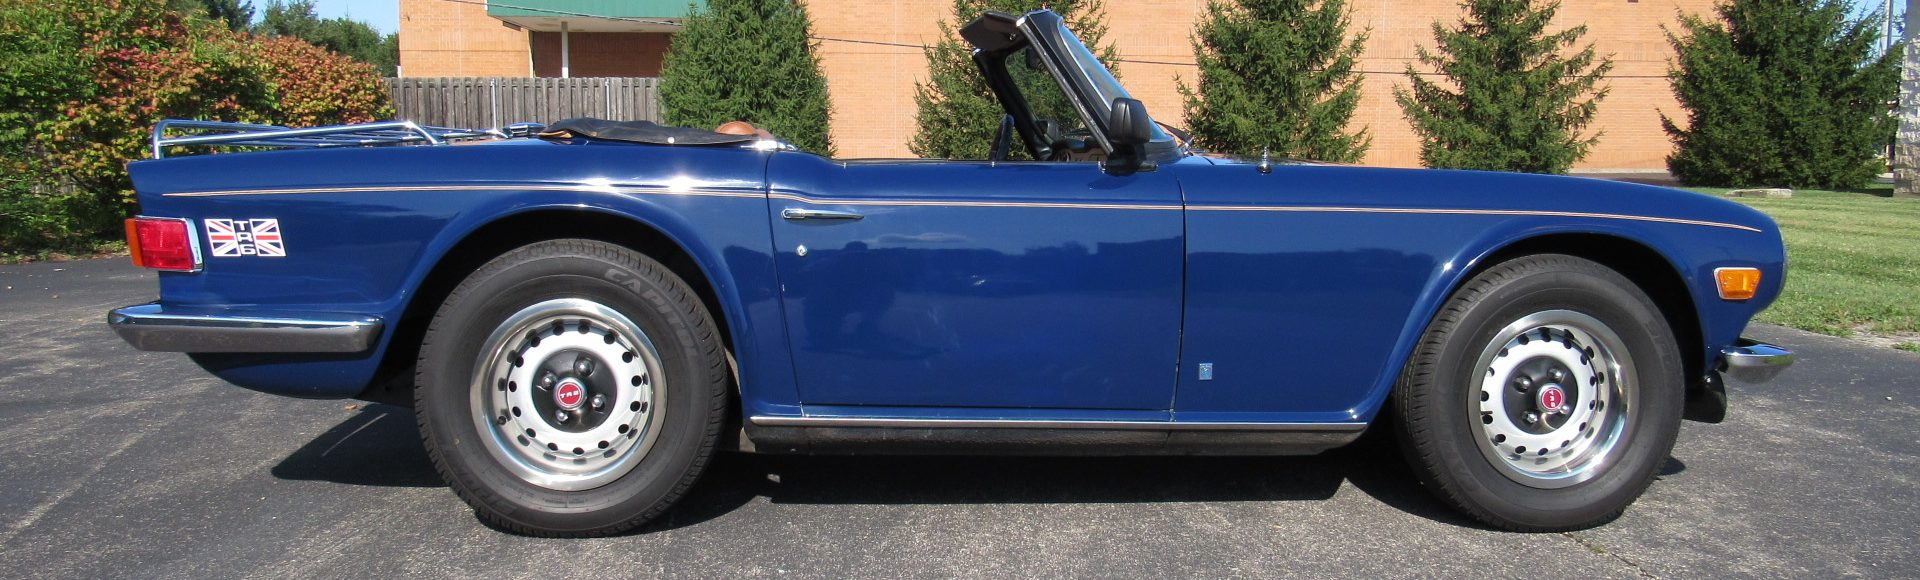 1974 TR6, Restored, 4 Speed, SOLD!